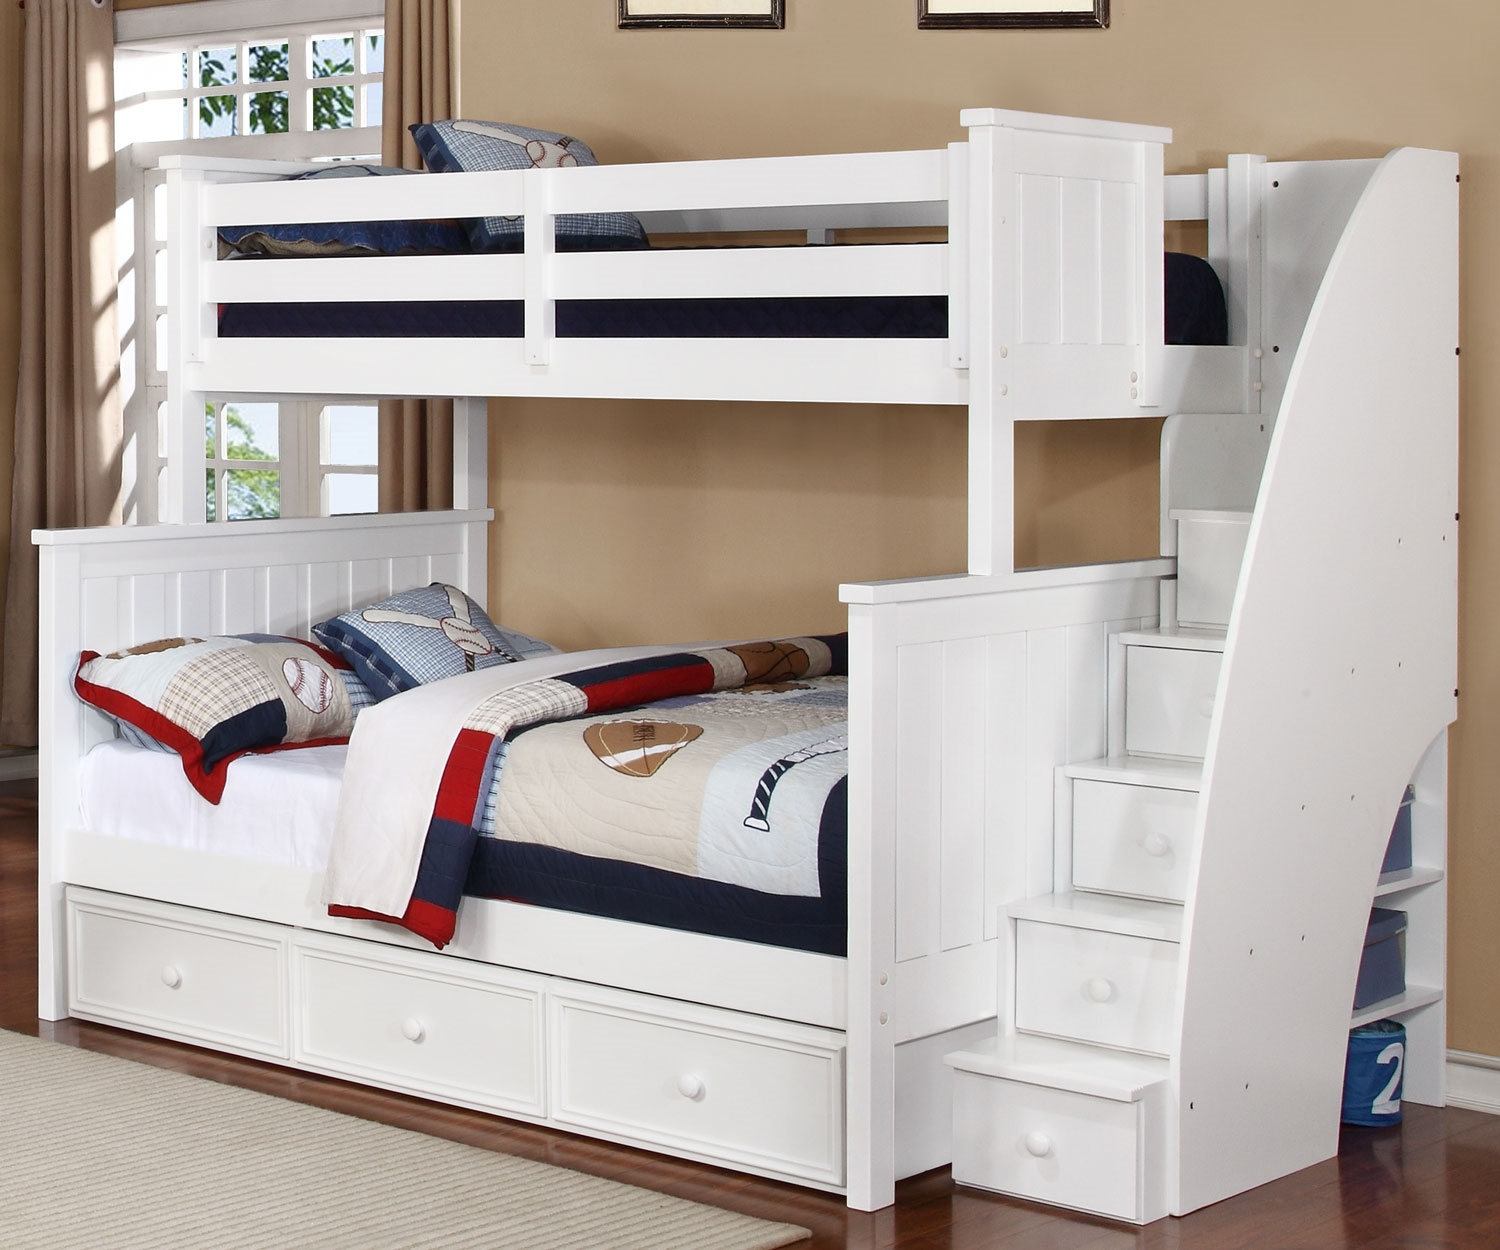 Tips In Time To Buy The Perfect Bunk Bed Online